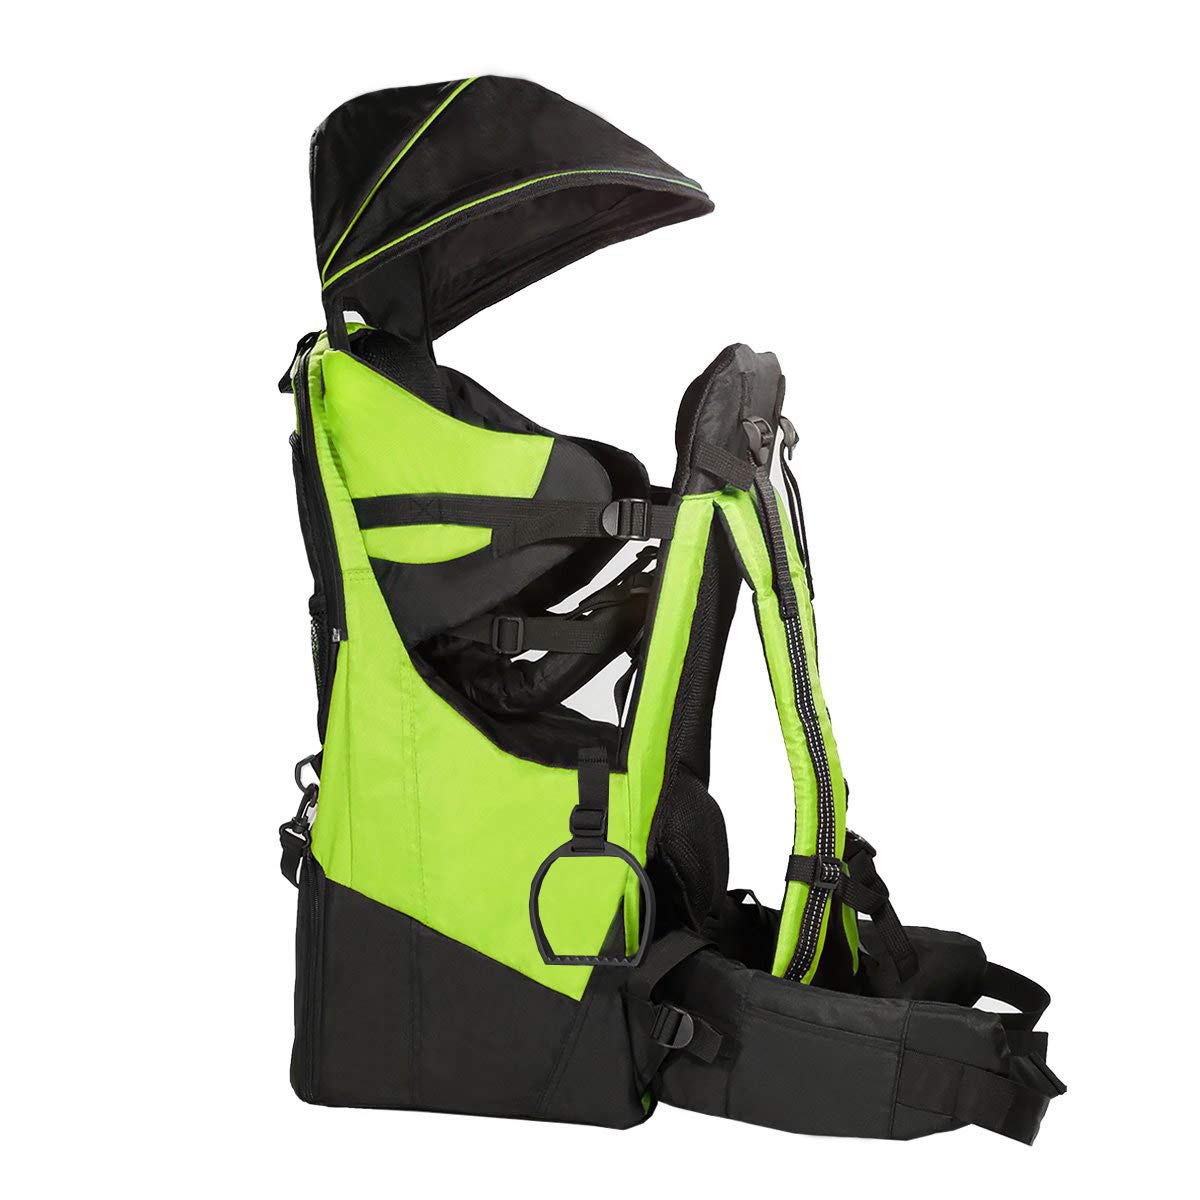 B00LH8B3O6 ClevrPlus Deluxe Baby Backpack Hiking Toddler Child Carrier Lightweight with Stand & Sun Shade Visor, Green   1 Year Limited Warranty 61885Te907L